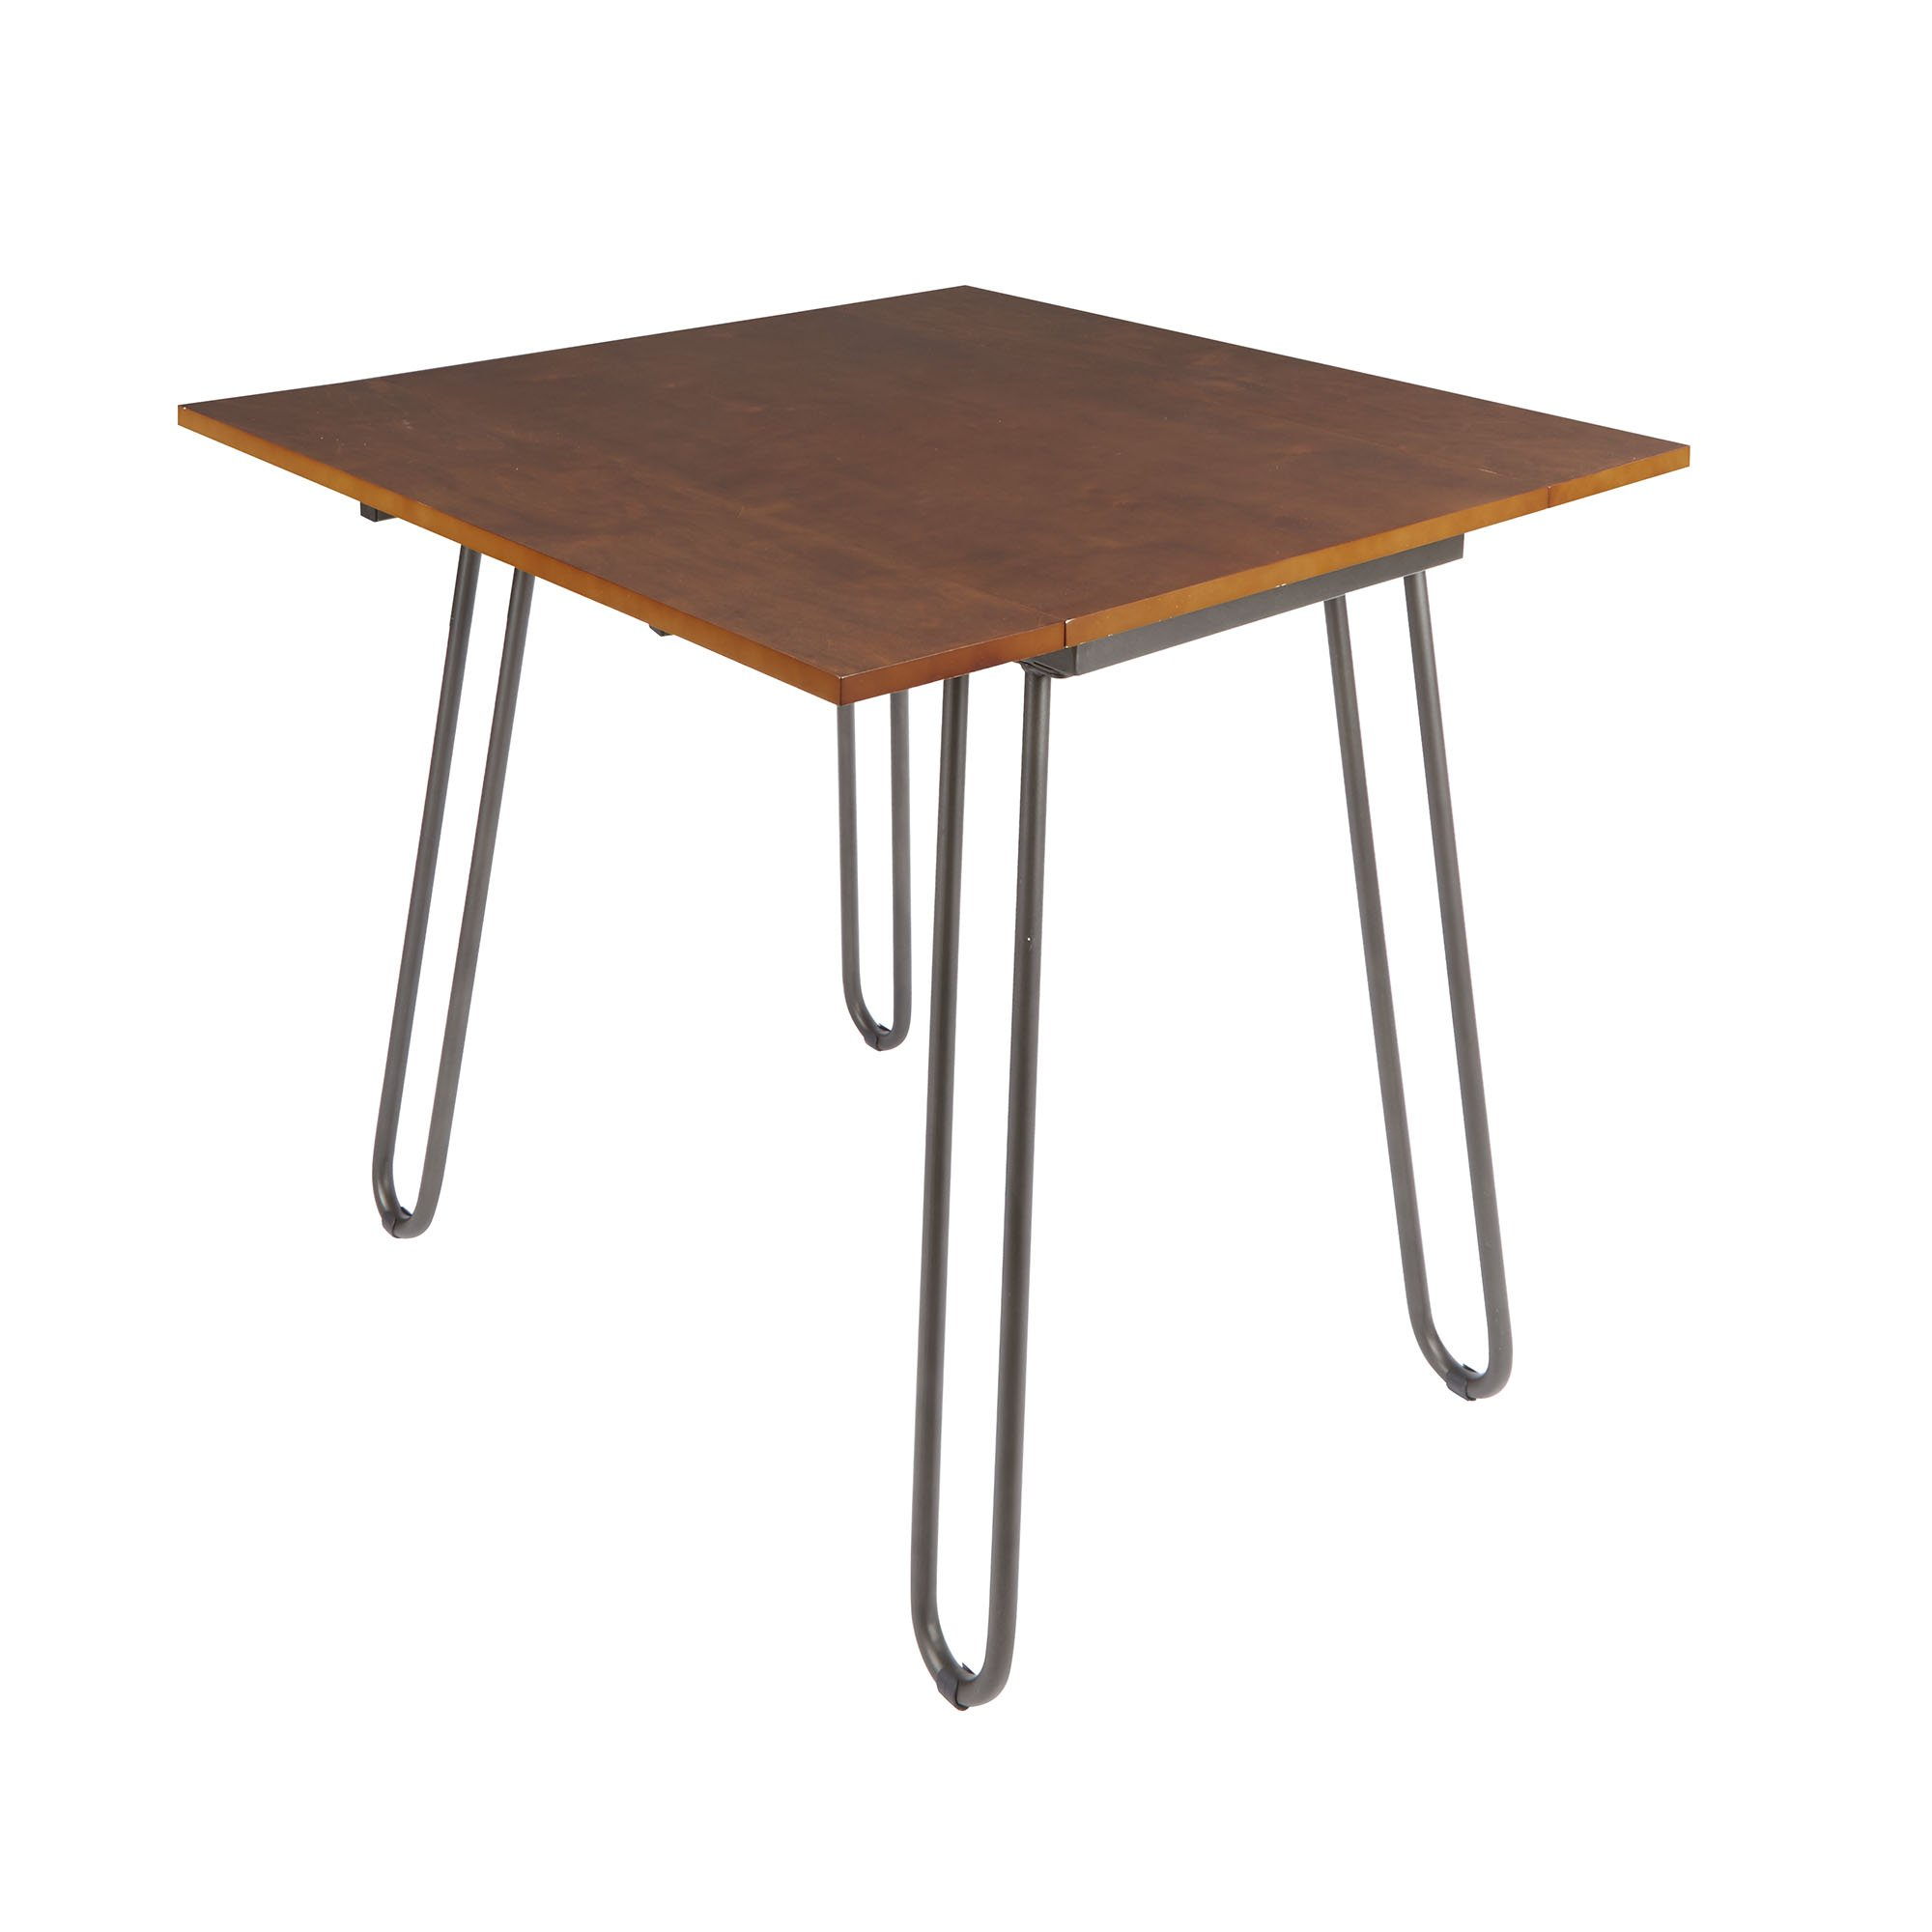 SilverwoodHenry Drop Leaf Table with Hairpin Legs by Silverwood